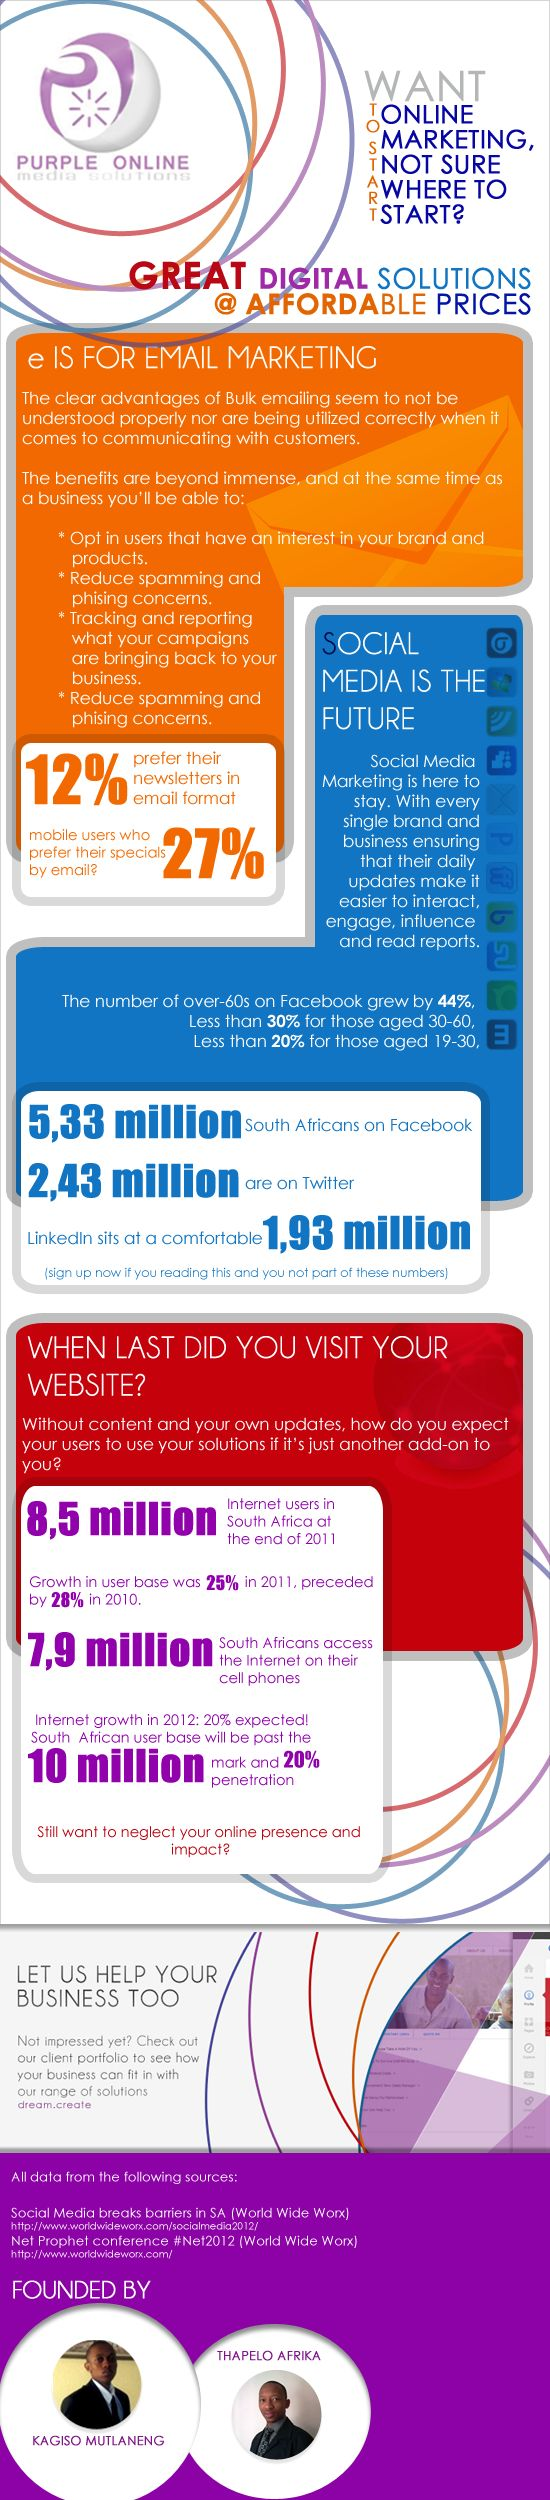 Our 2012/2013 Inforgraph to update our clients and potential clients on what they can expect with the South African online market.